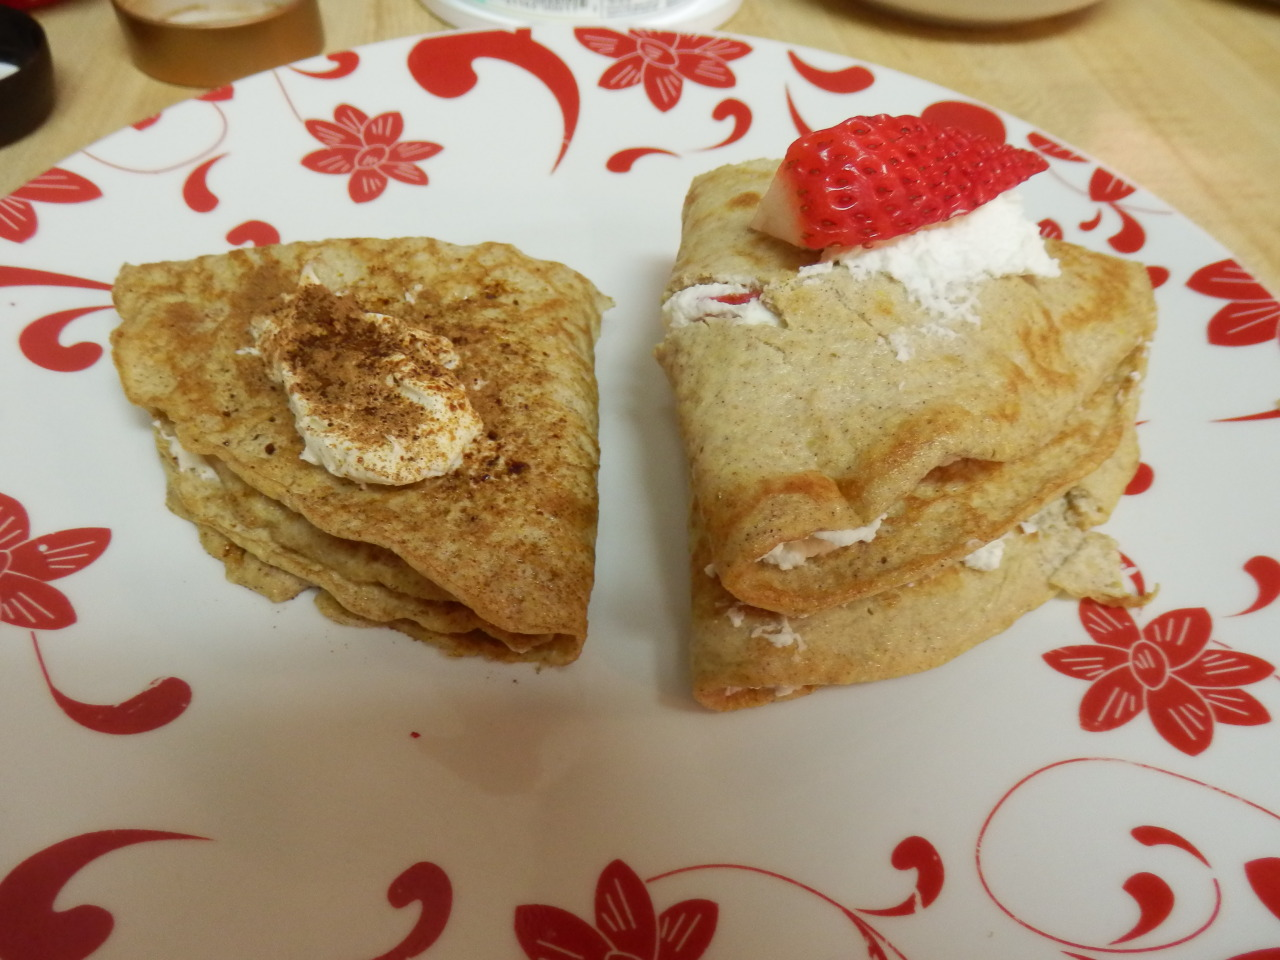 MADE SOME CREPES. LOOK AT THOSE BEAUTIFUL CREATURES. TIRAMISU AND STRAWBERRIES & FRESH WHIPPED CREAM CREPES. I'M A FLUFFIN' CHEF.